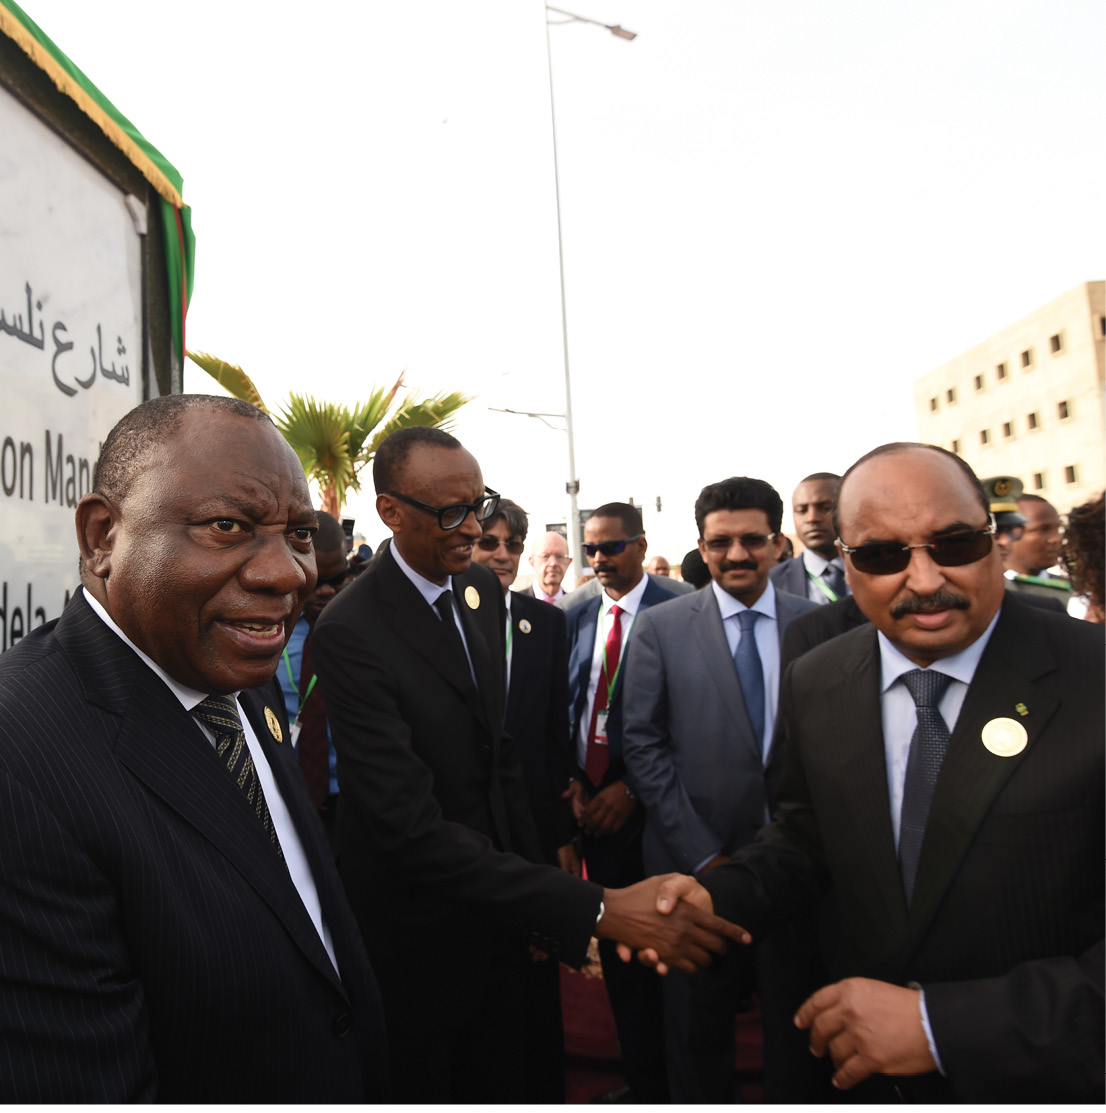 President Cyril Ramaphosa with Mauritania President Mohamed Ould Abdel Aziz during the naming of Nelson Mandela Avenue in Mauritania.